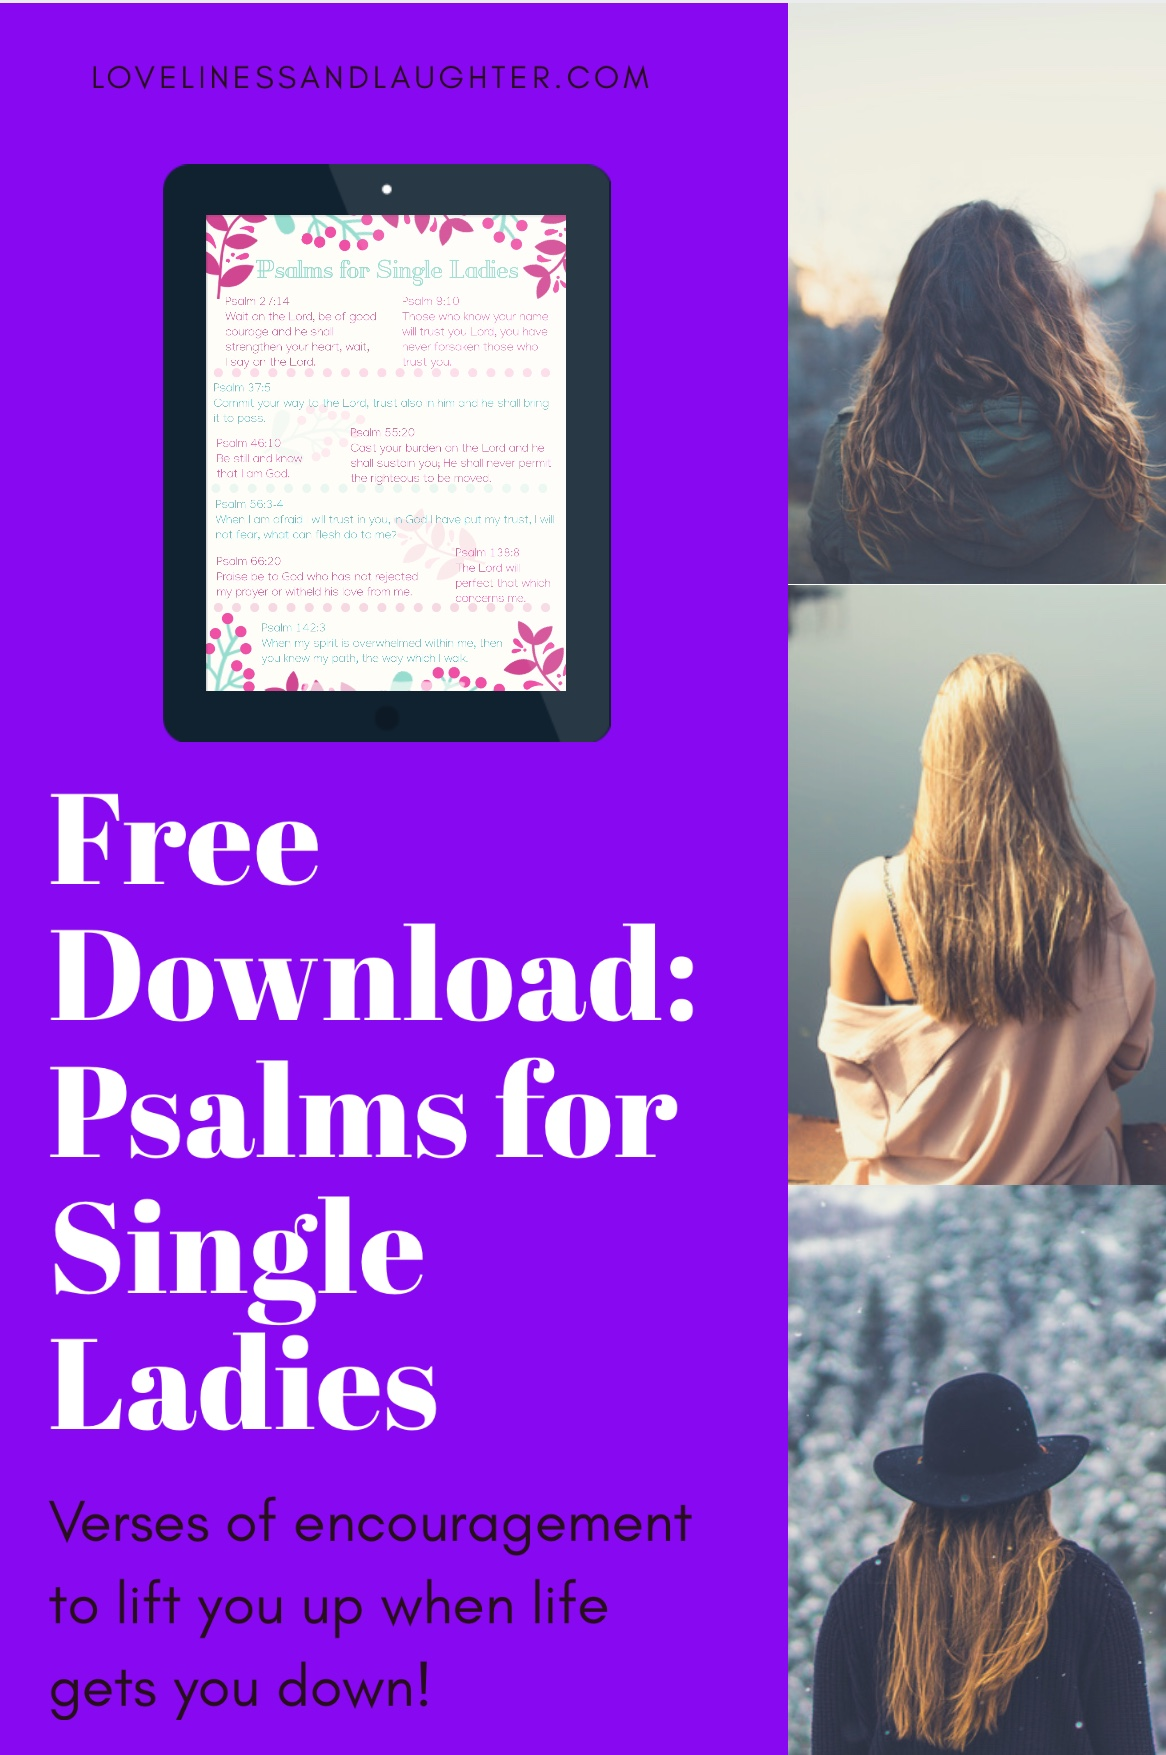 free download verses to encourage single women